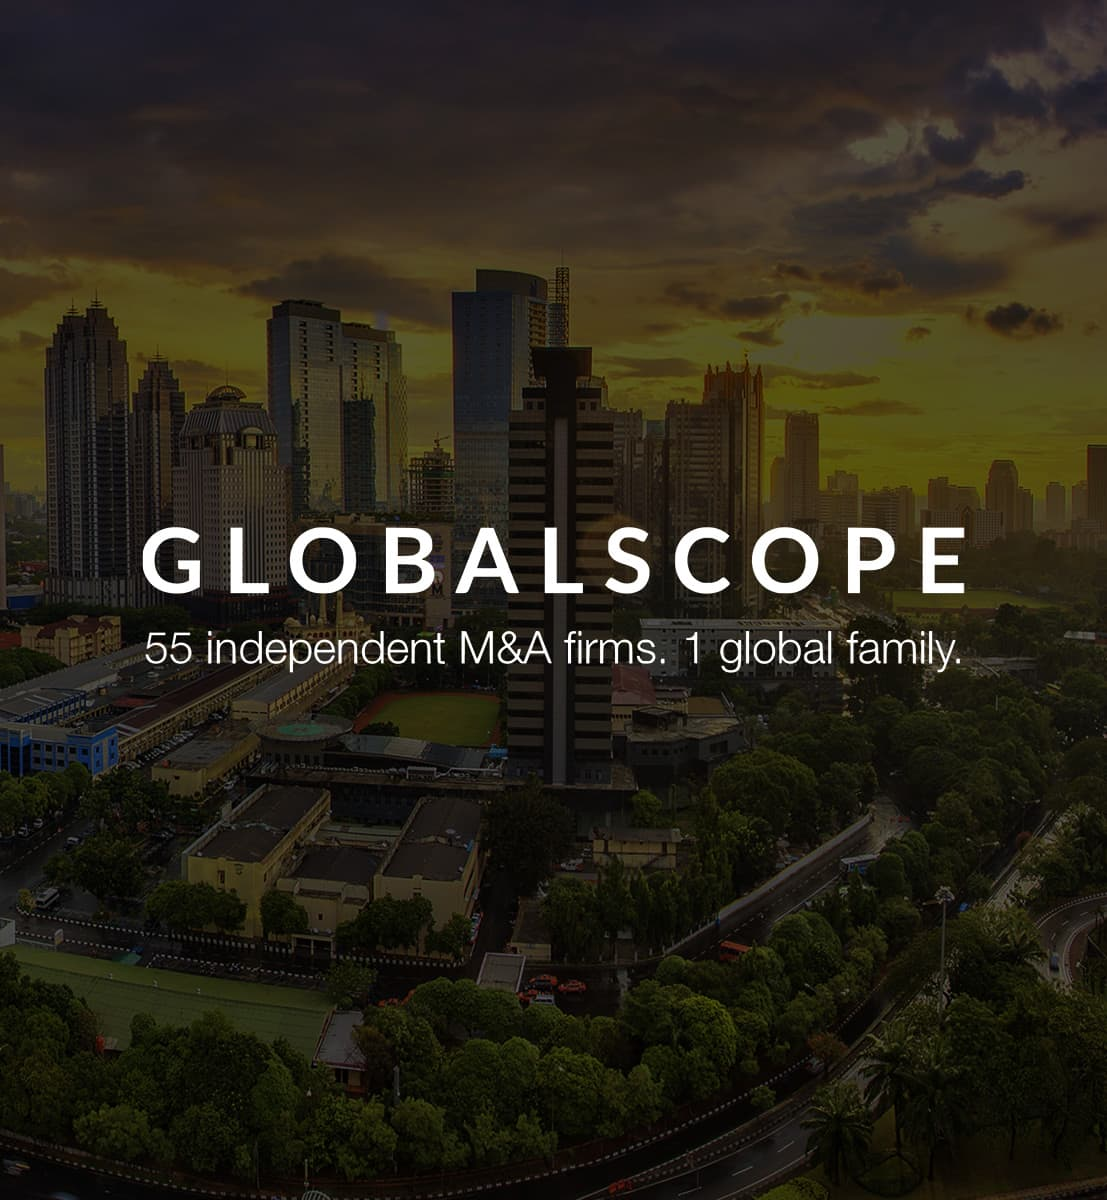 Globalscope Partners welcome two new members to their M&A network